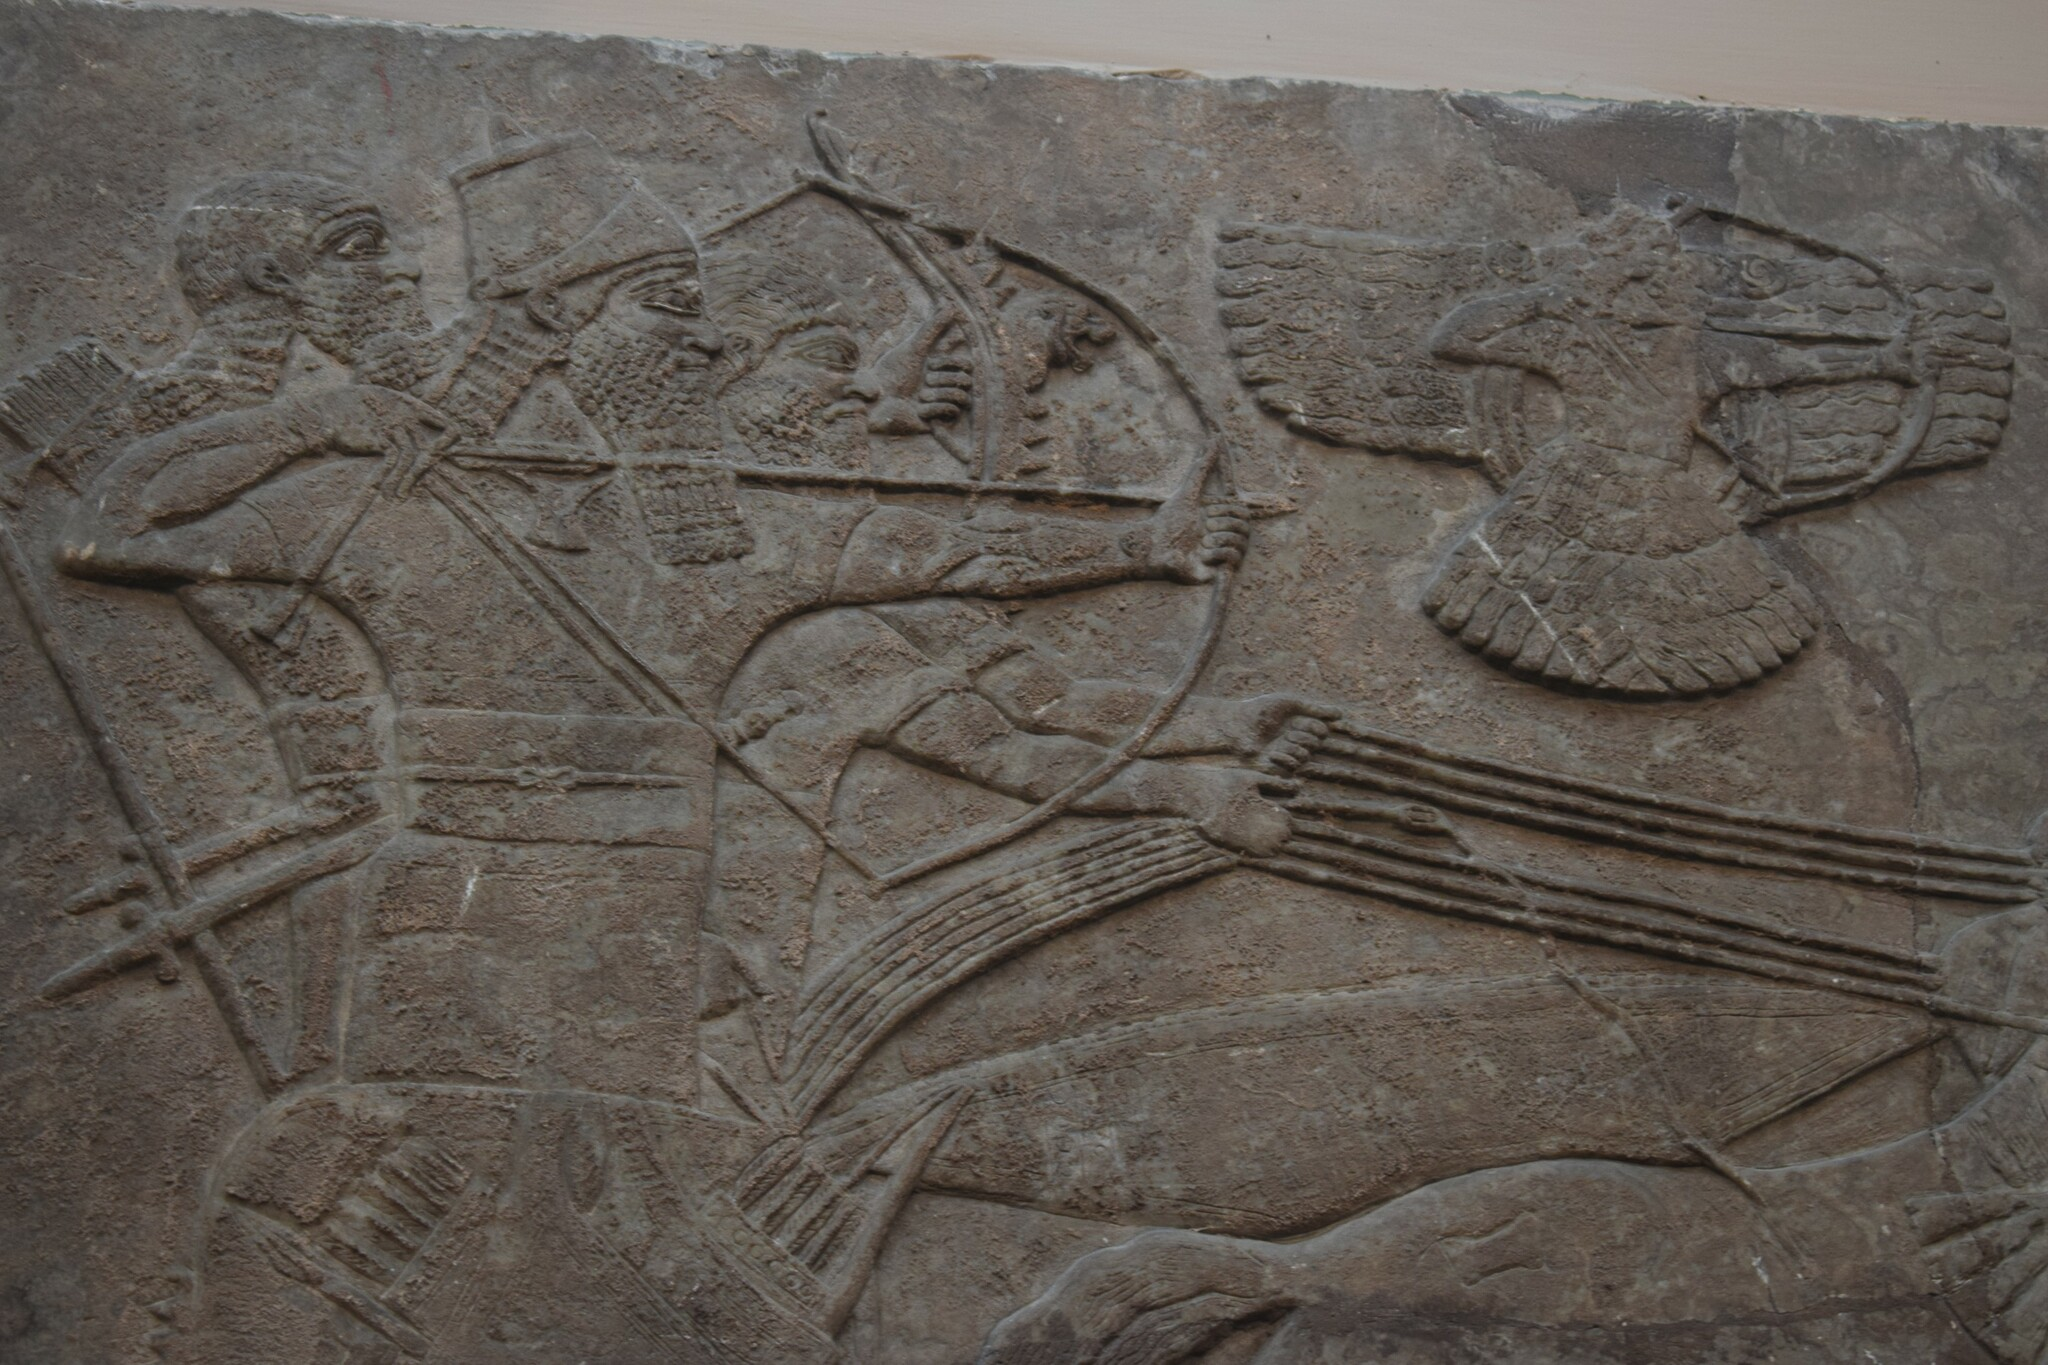 Wall relief with the Assyrian god Aššur